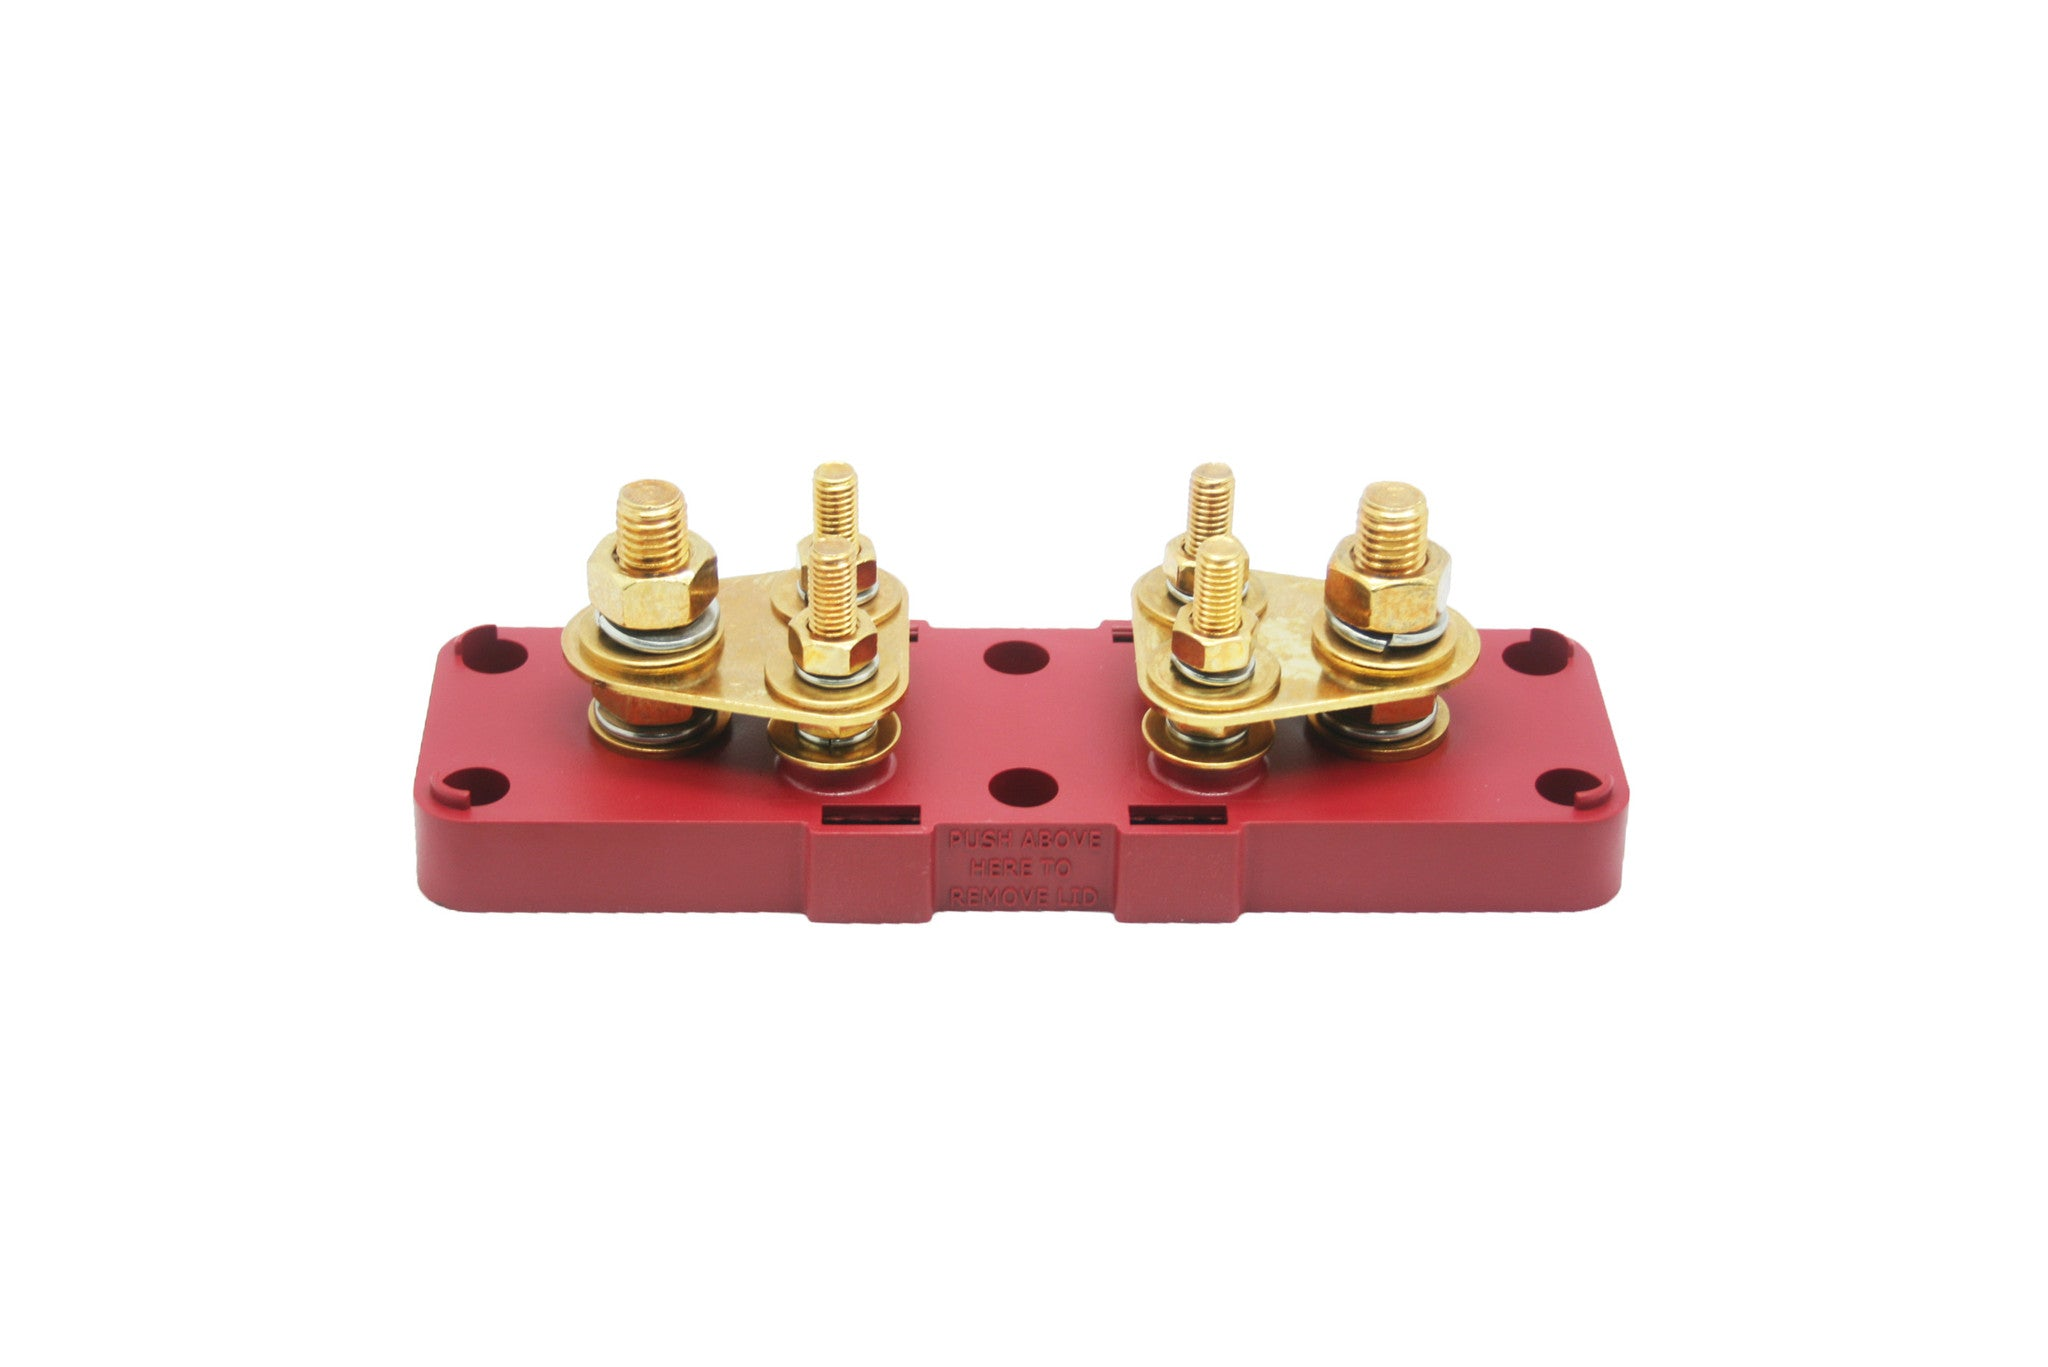 Gold Plated Fuse Holders M8 (up to 500A) & M12 (up to 1000A)